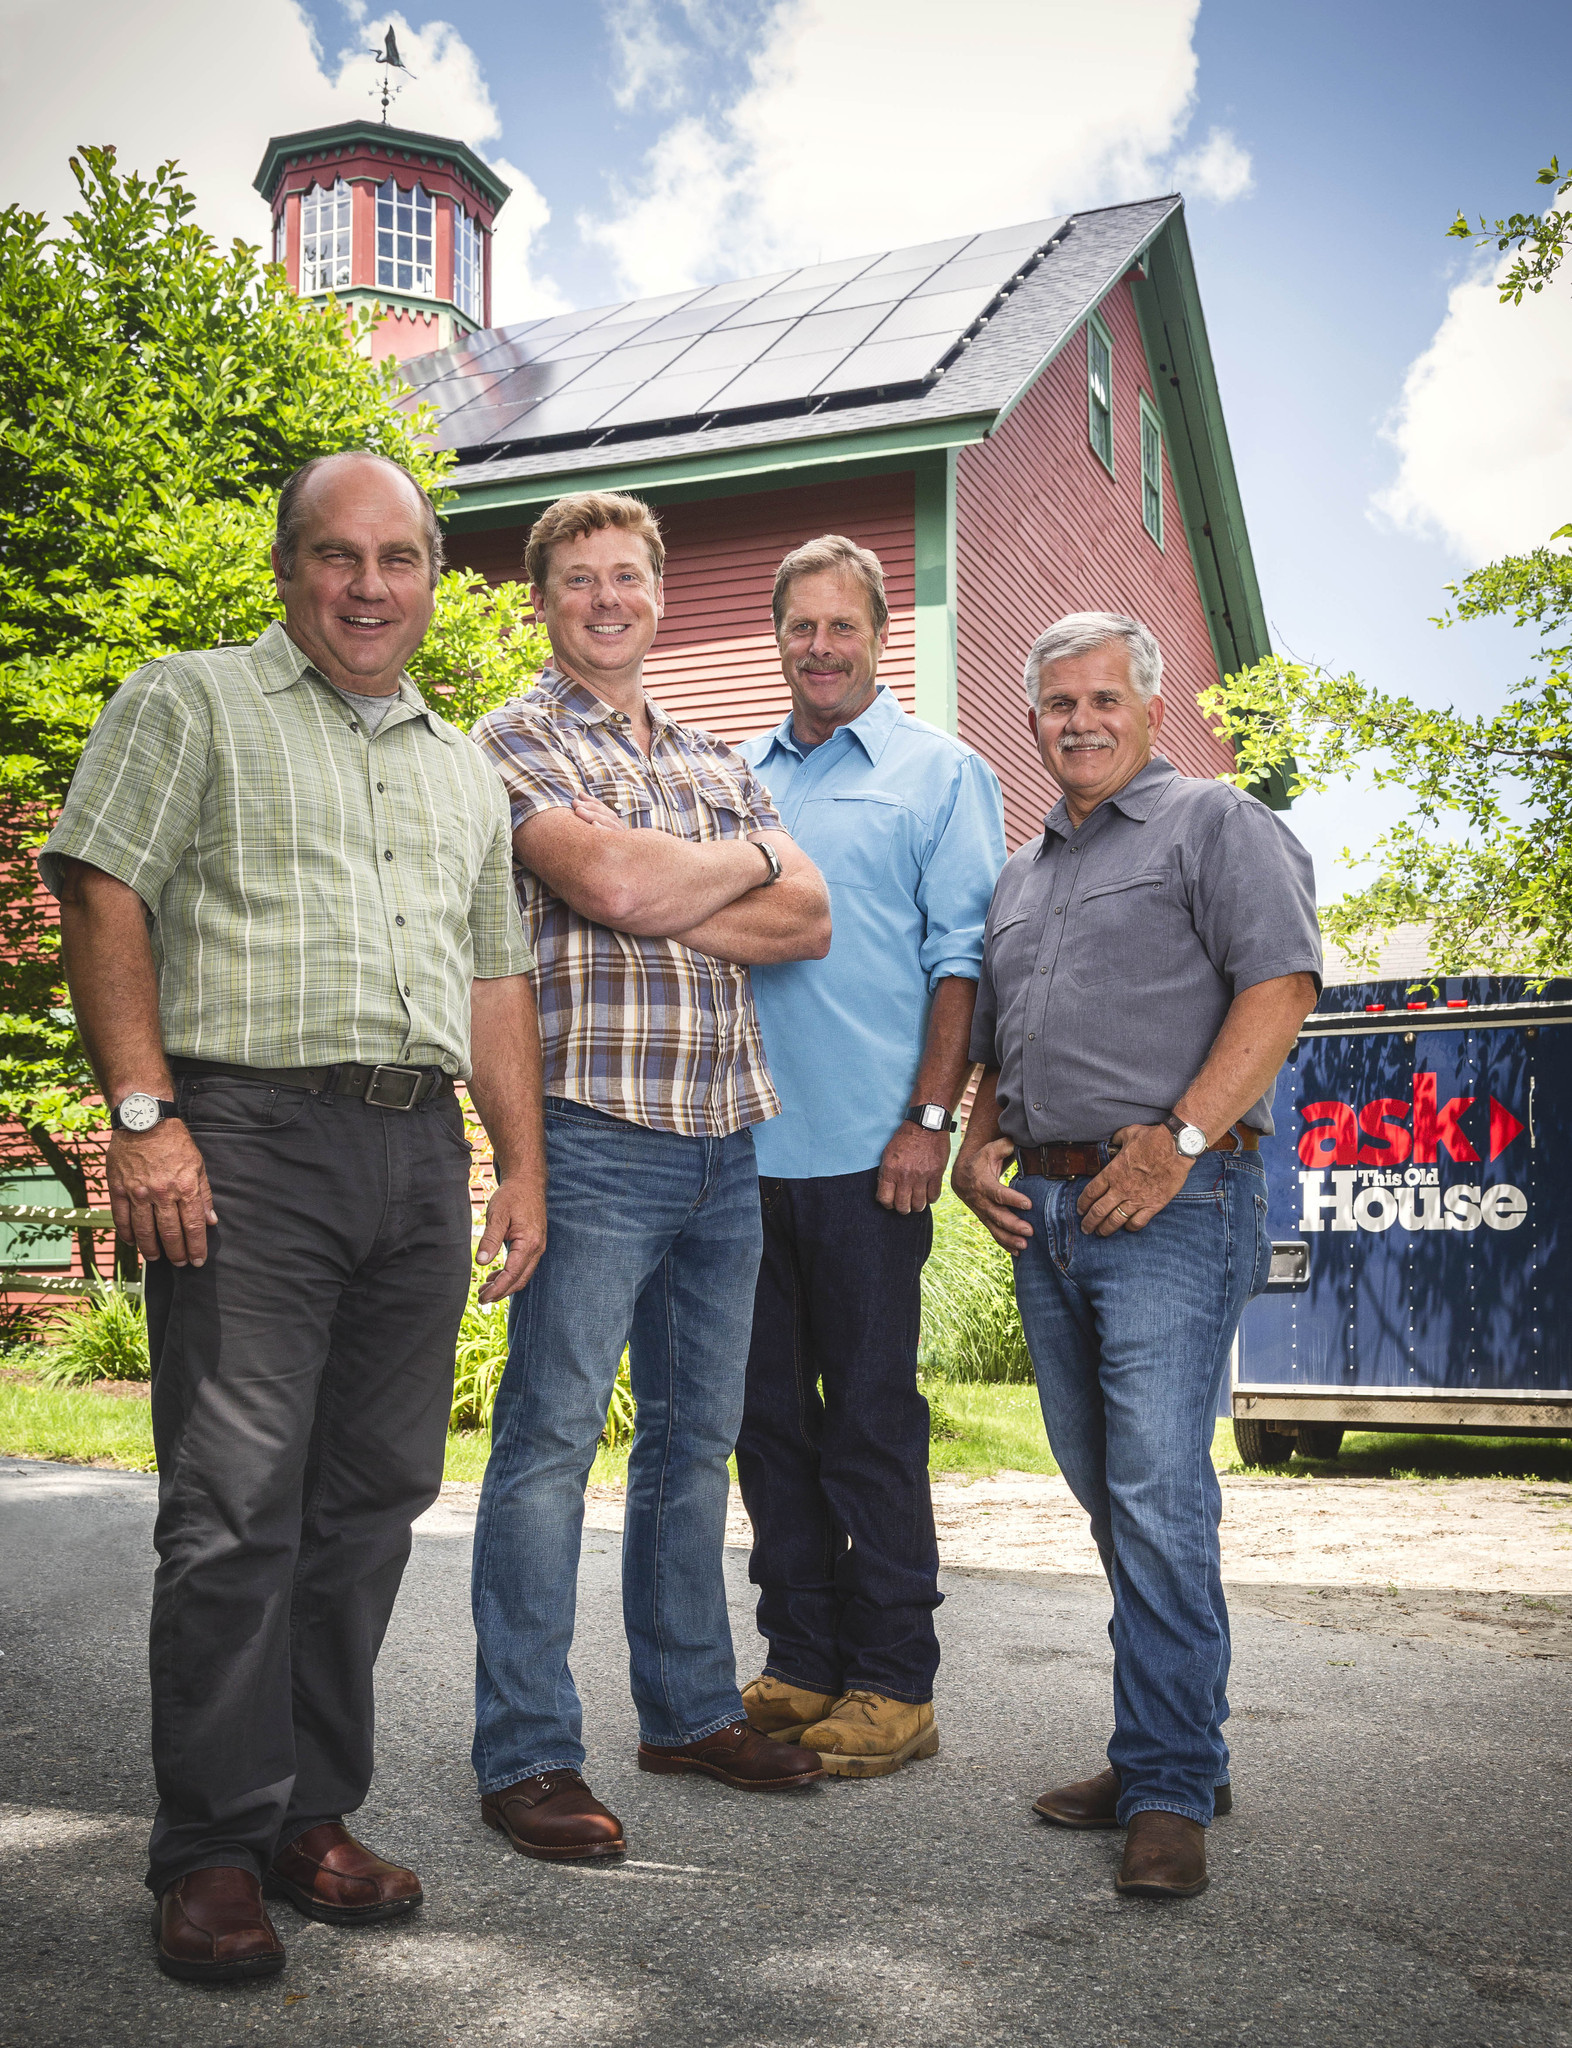 'Ask This Old House' set to film in Chicago area next week ...